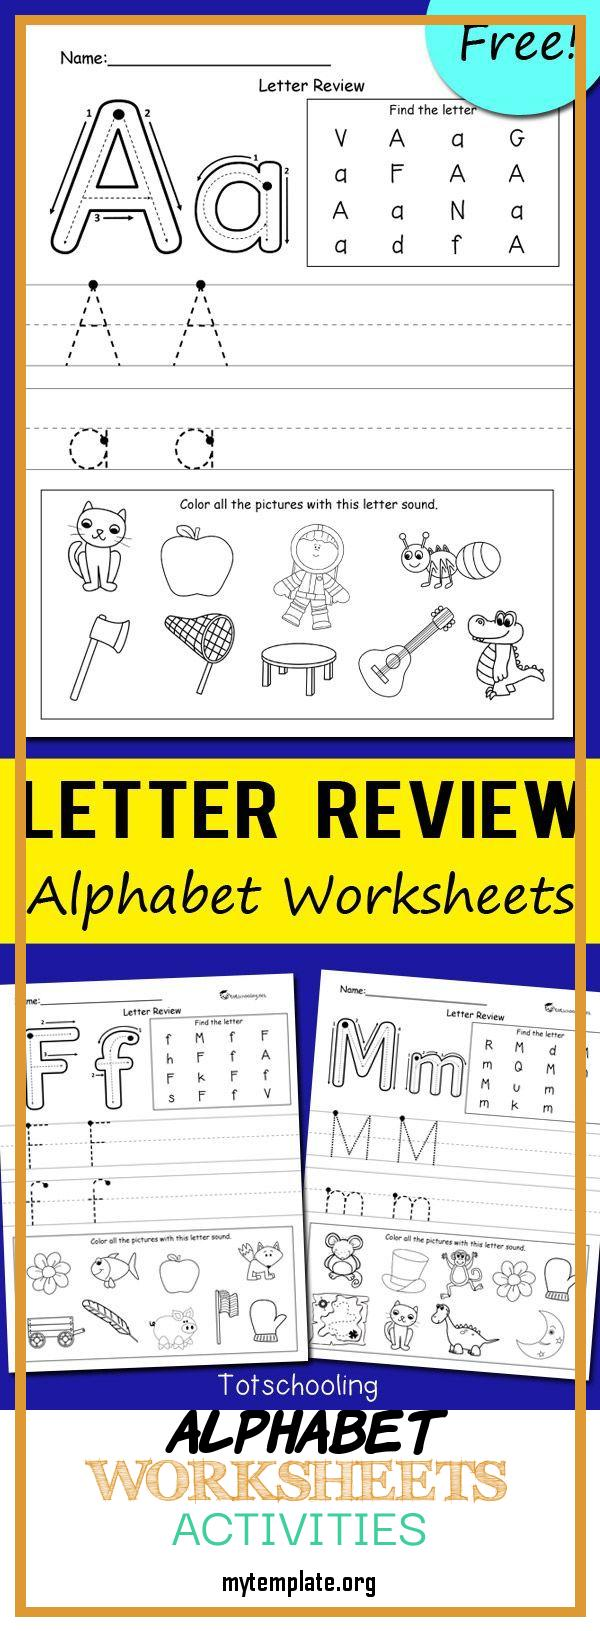 6 Alphabet Worksheets Activities - Free Templates